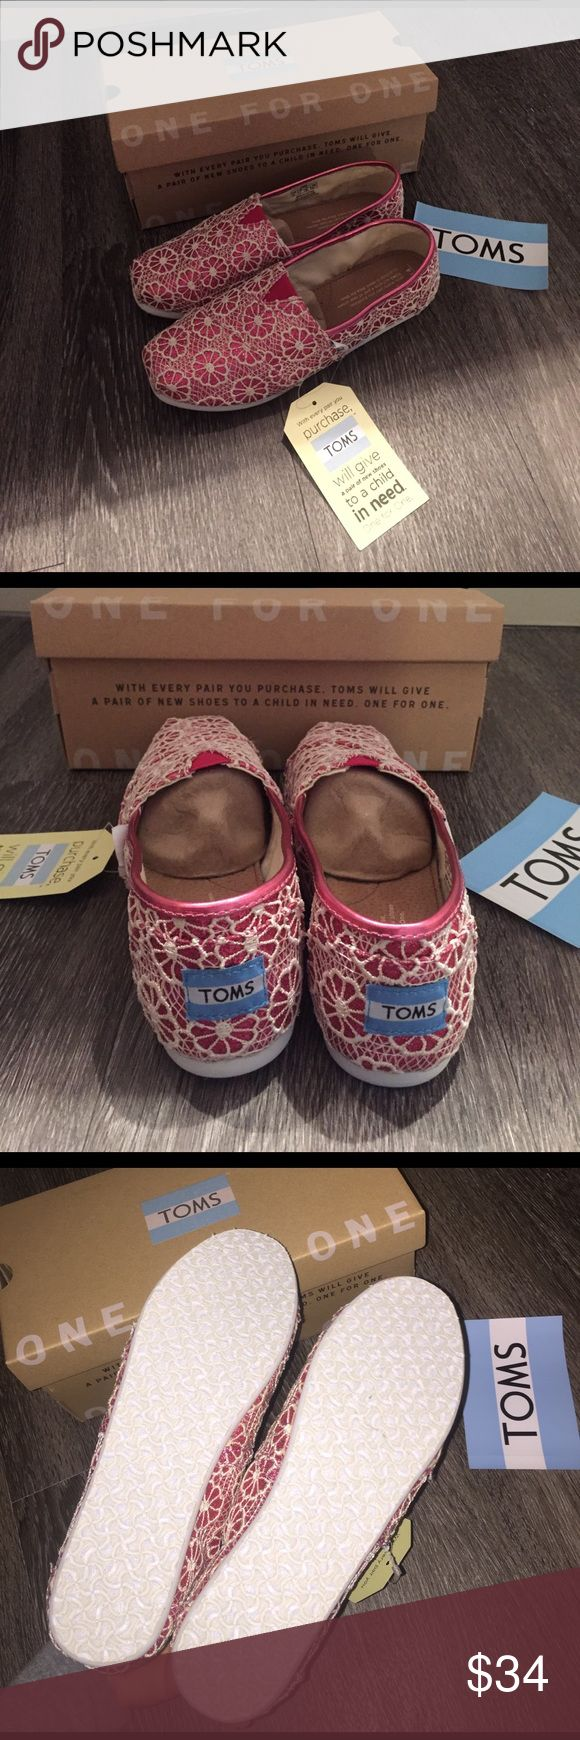 TOMS crochet glitter floral shoes NWT in box. Kids size 4 (equivalent to a women's size 6) TOMS Shoes